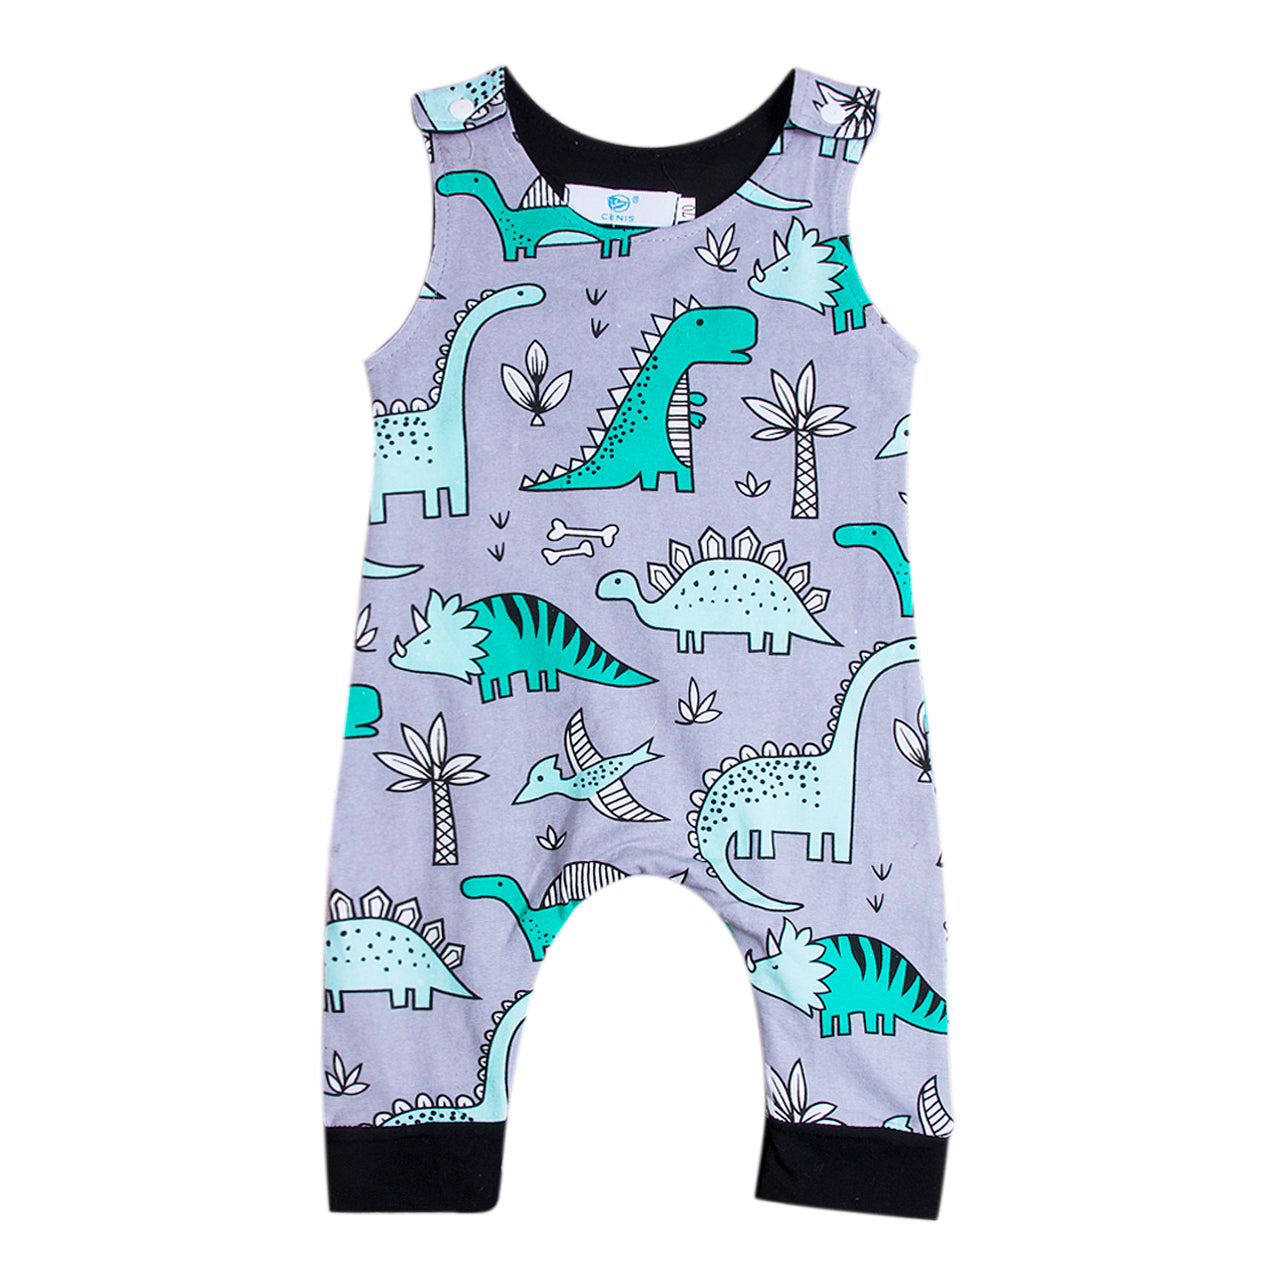 2018 Baby Kids Boy Girl Top Infant Short Sleeves Romper Jumpsuit Dinasour Clothes Outfit Summer Customize Set 0-24M SS-eosegal